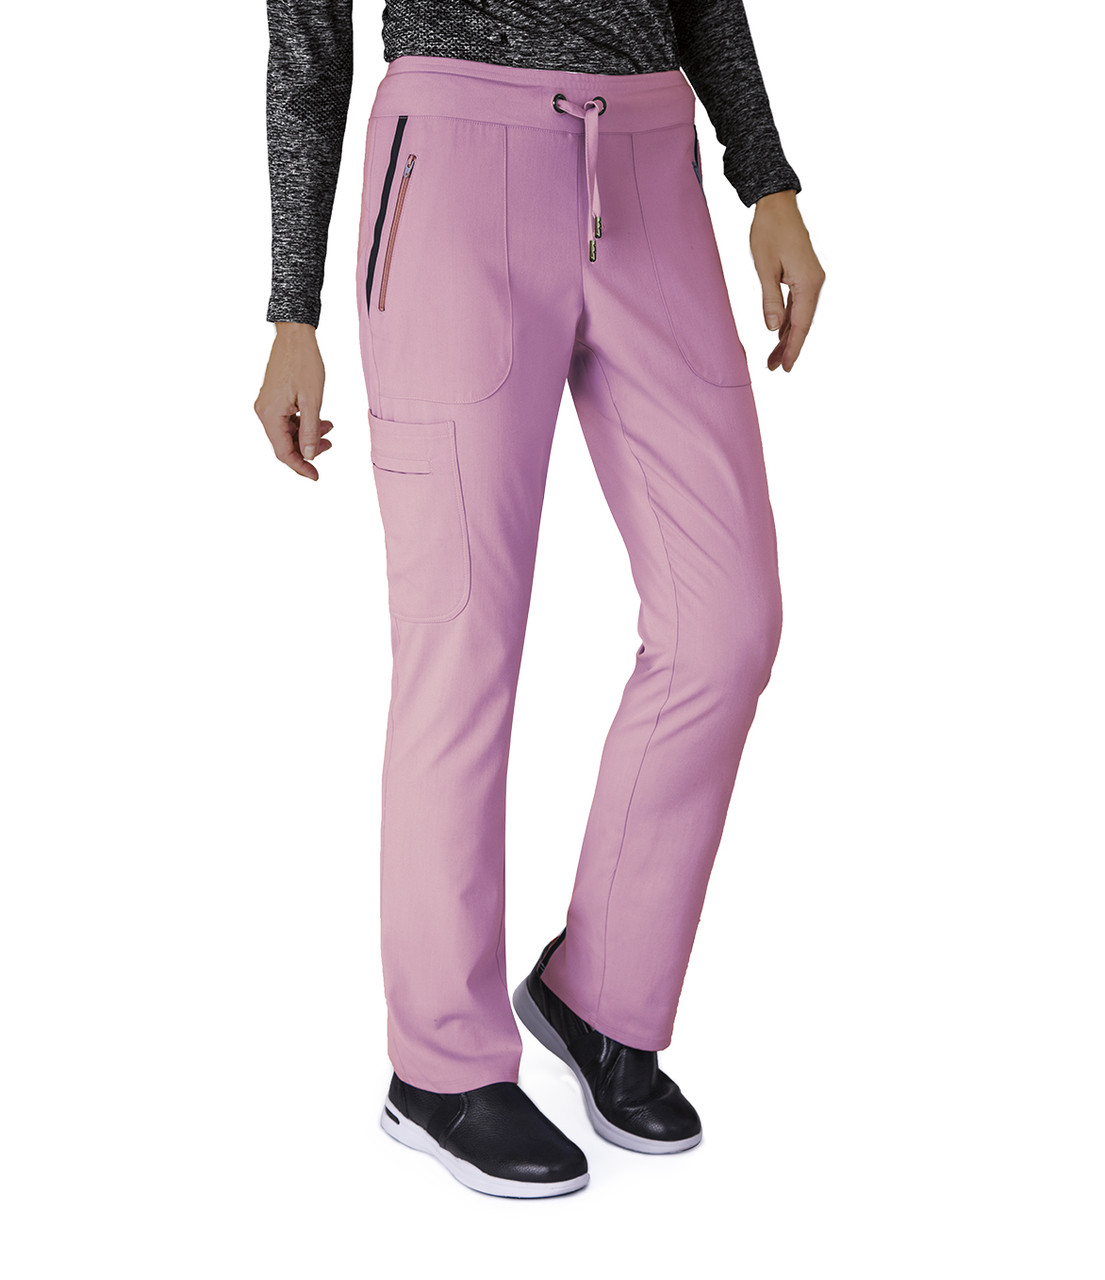 f784818d67d90 (7228P) Grey's Anatomy Impact Scrubs - Elevate 6 Pocket Cargo Pant (Petite)  ...